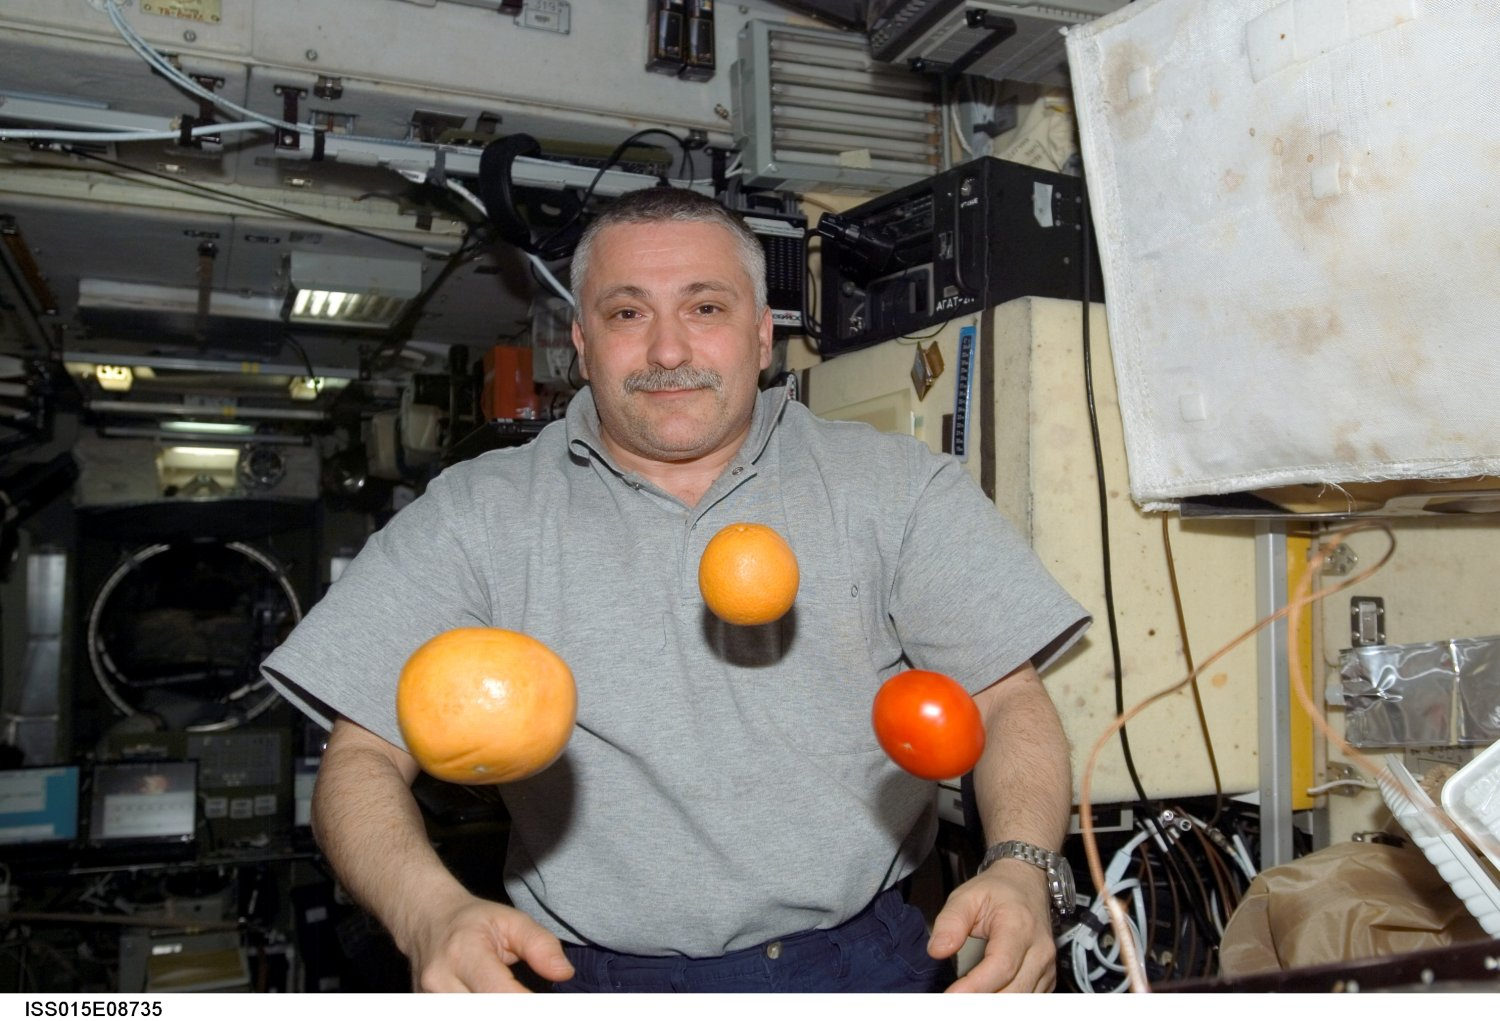 On the ISS